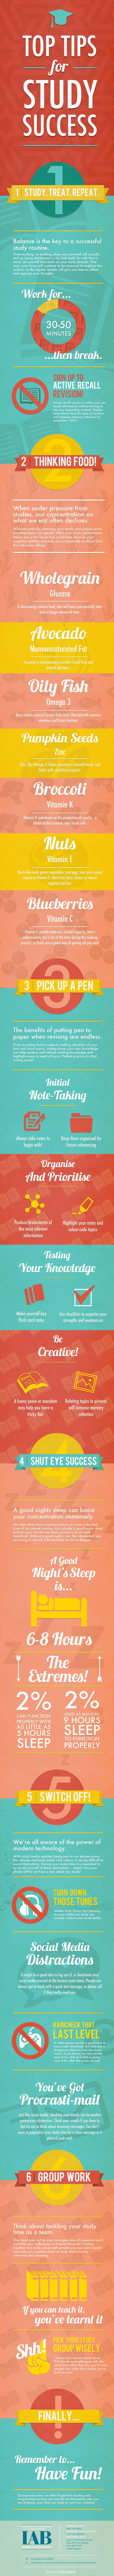 best ideas about good study habits study habits top tips for study success infographic elearninginfographics com top